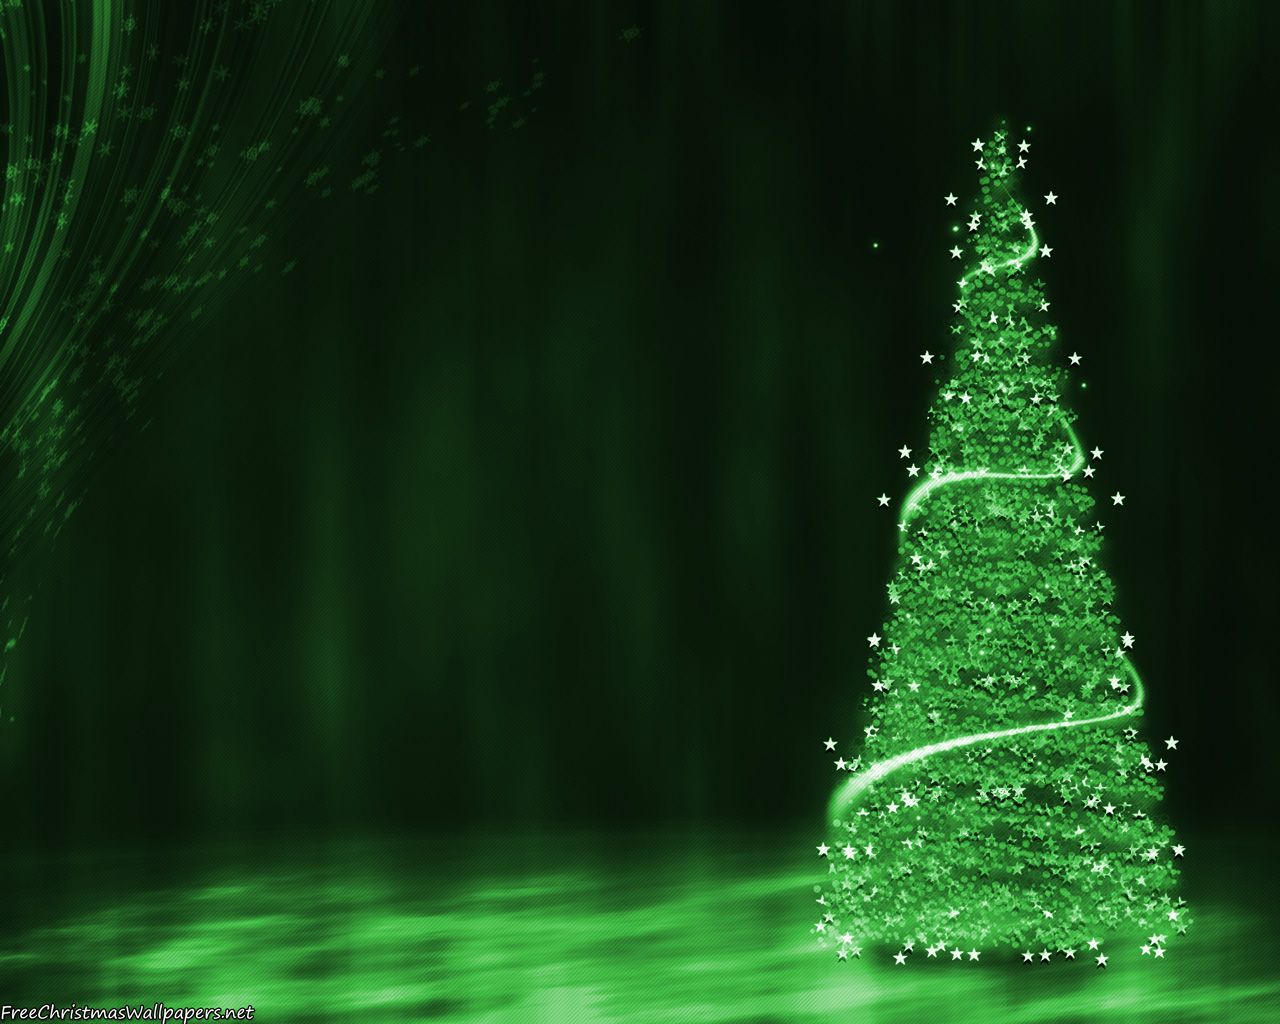 Green christmas tree background wallpaper merry christmas ii green christmas tree background wallpaper voltagebd Choice Image